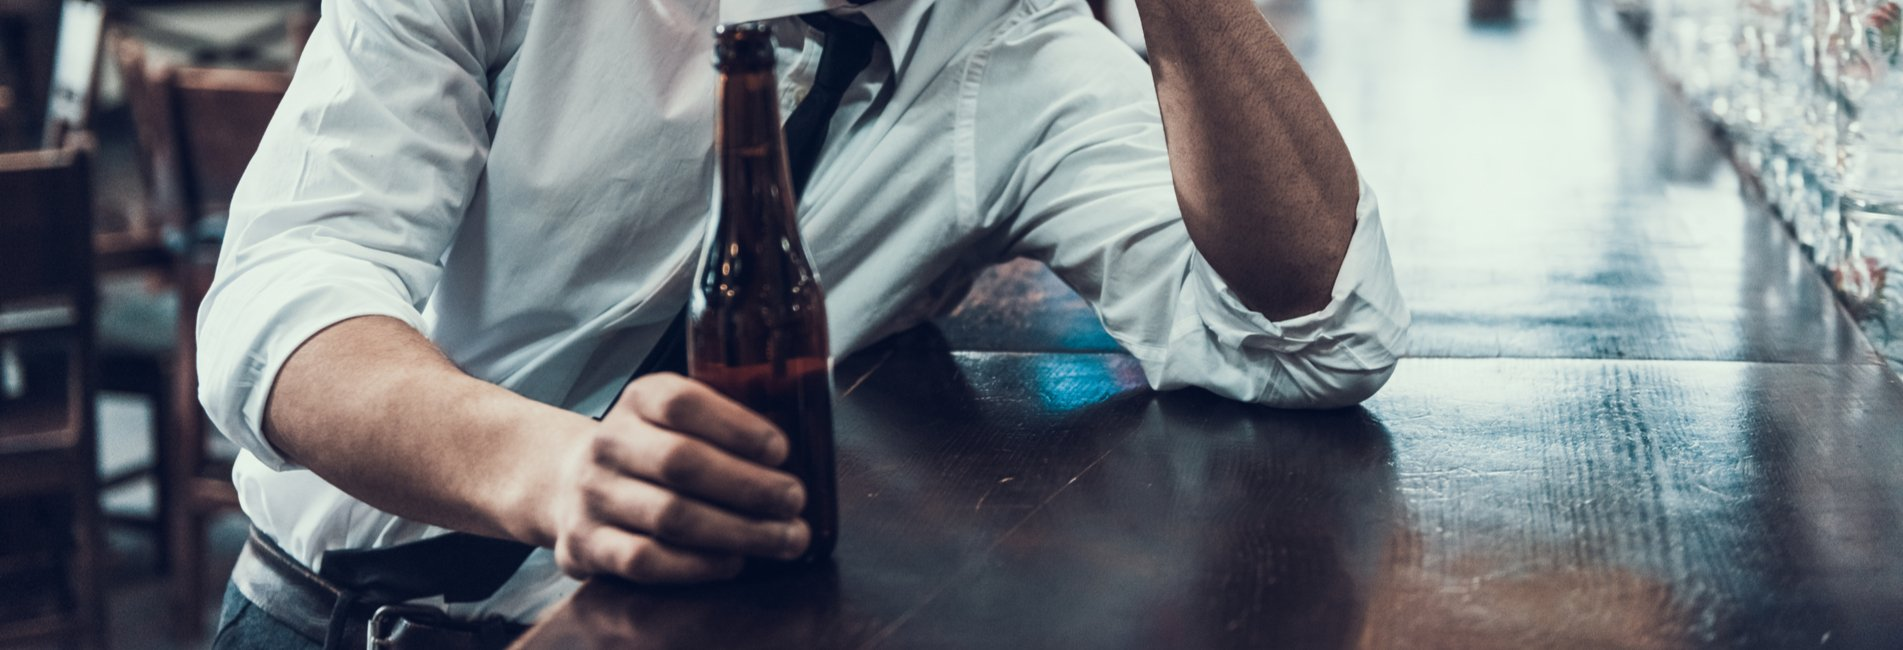 Why Alcohol is the Deadliest Drug Resurgence – A man with a beer at the bar. While he considers if he needs help getting sober, he should compare alcohol deaths vs other drugs and realize he needs help.